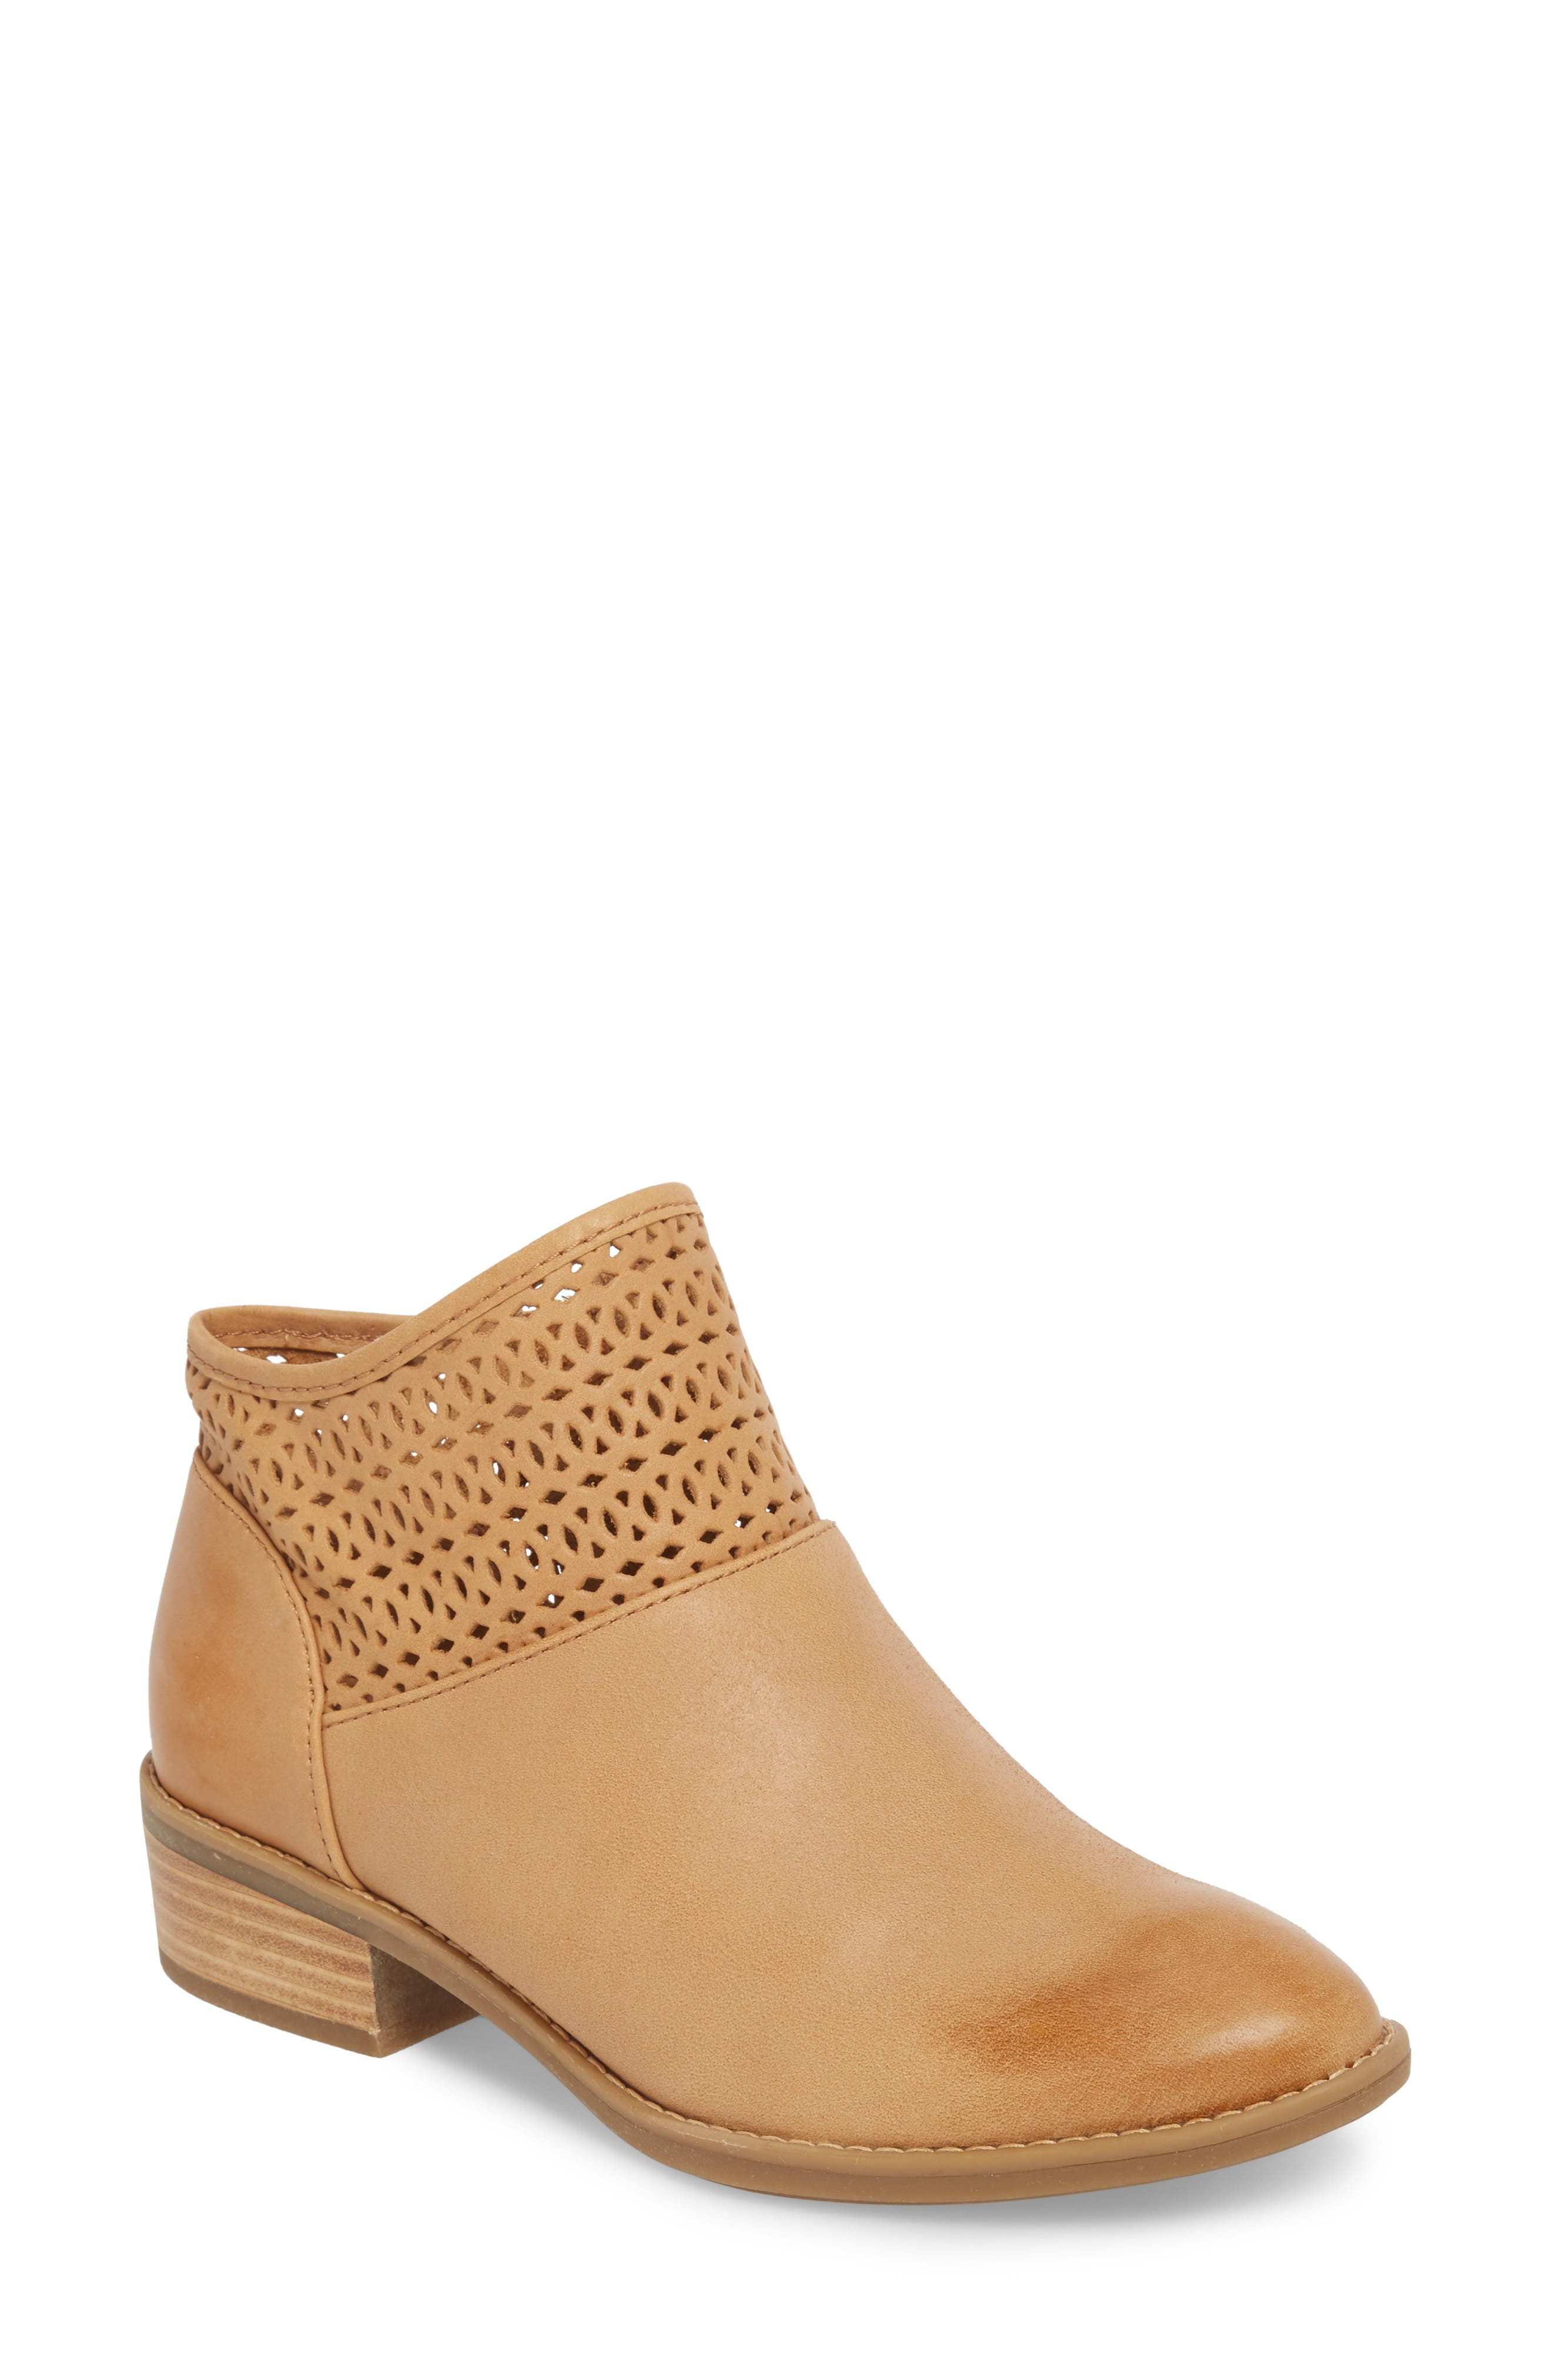 Caileen Bootie,                             Main thumbnail 1, color,                             NEW CARAMEL